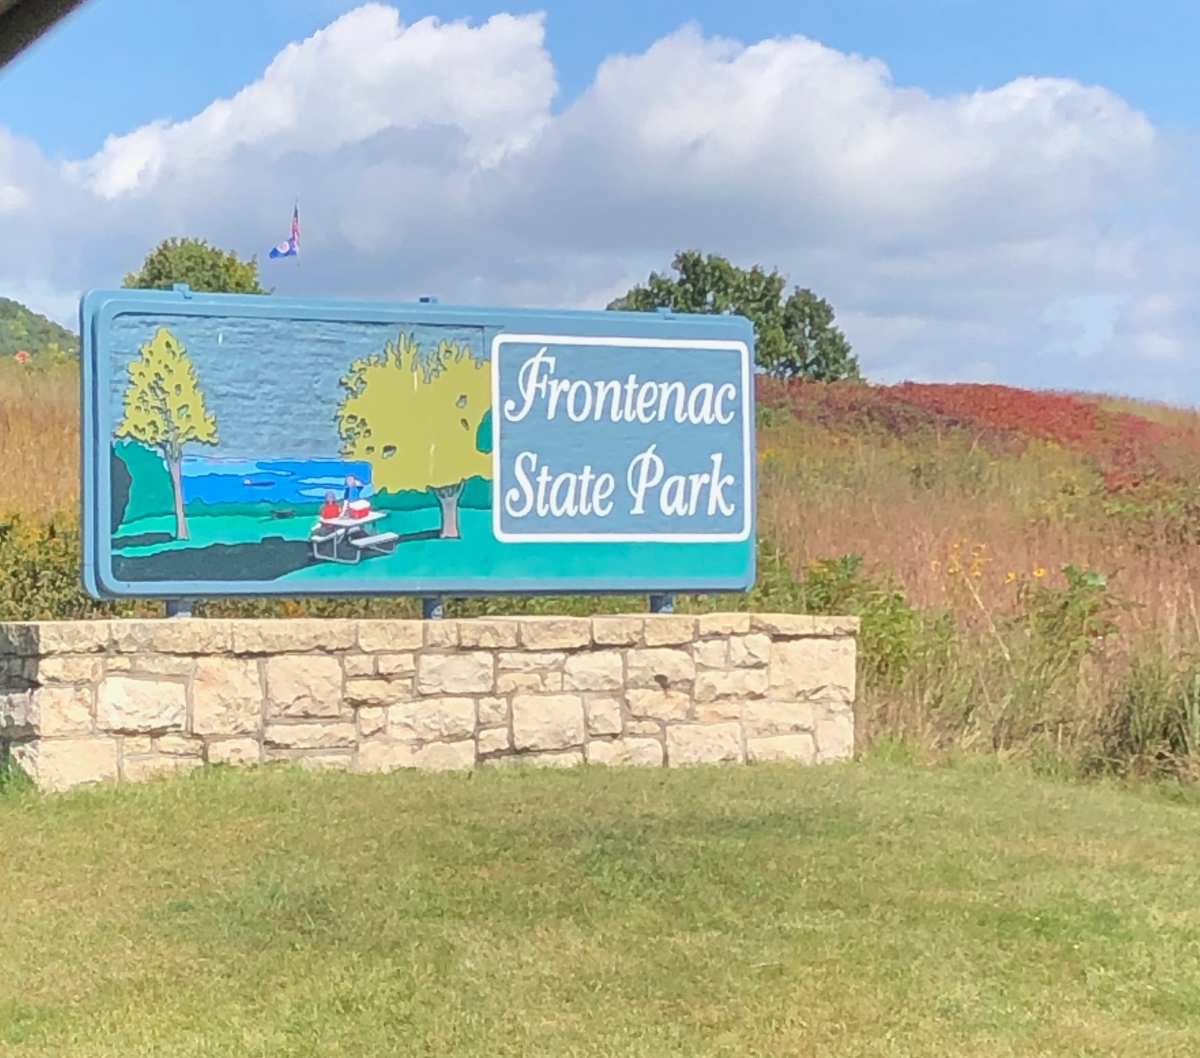 The inviting sign at Frontenac State Park